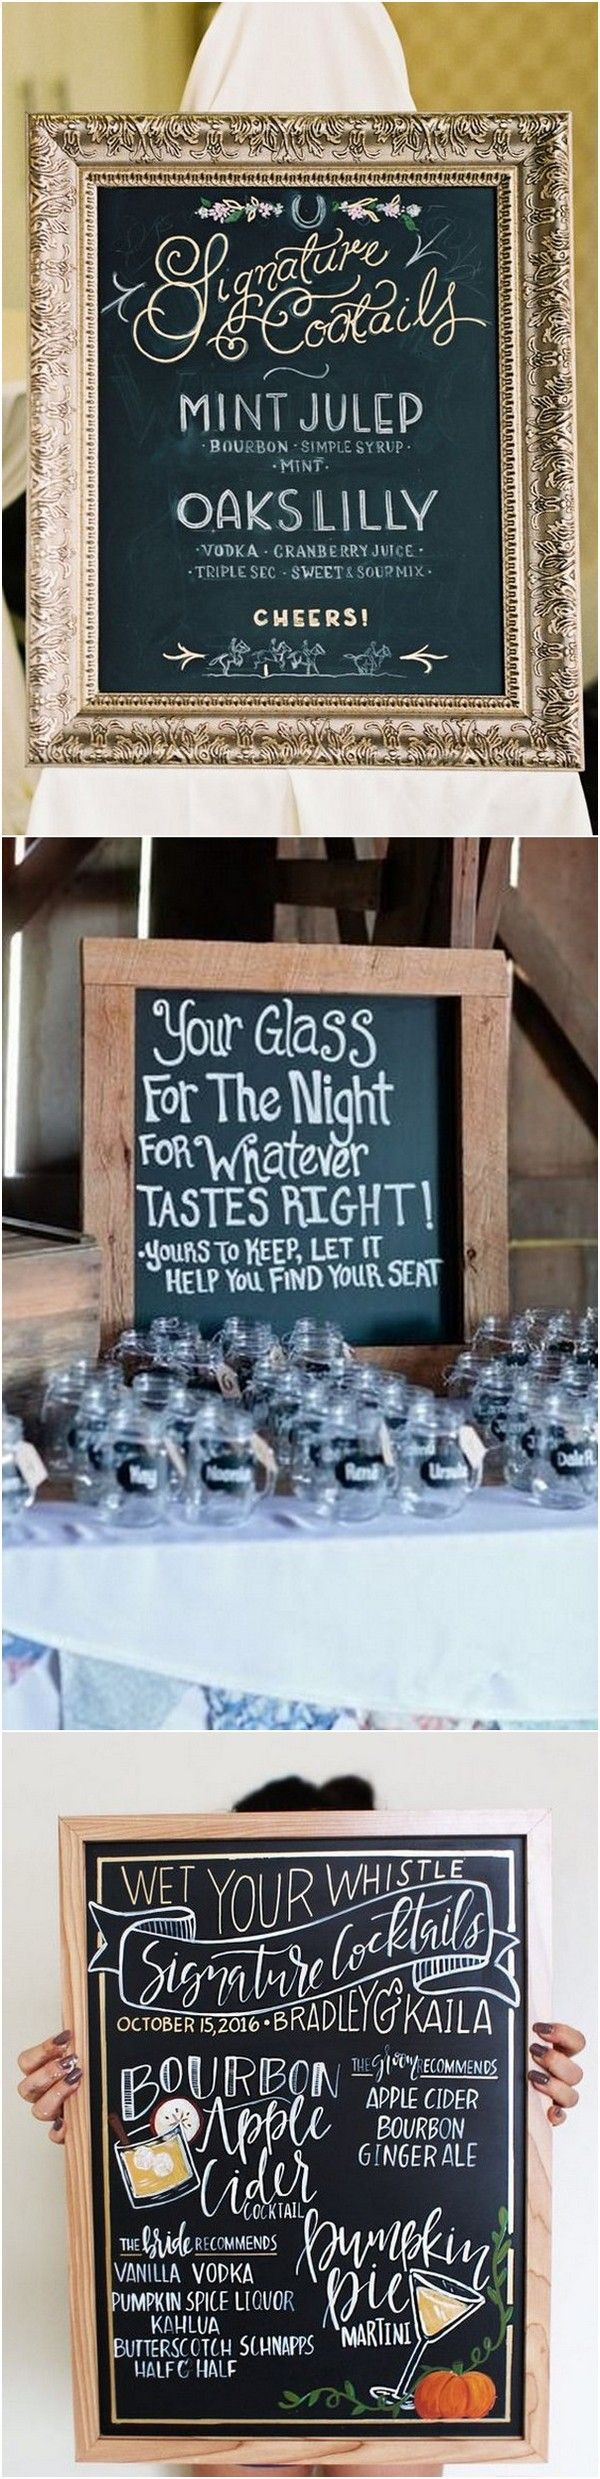 Wedding decorations table october 2018  Brilliant Wedding Drink Station Sign Ideas  Page  of  in